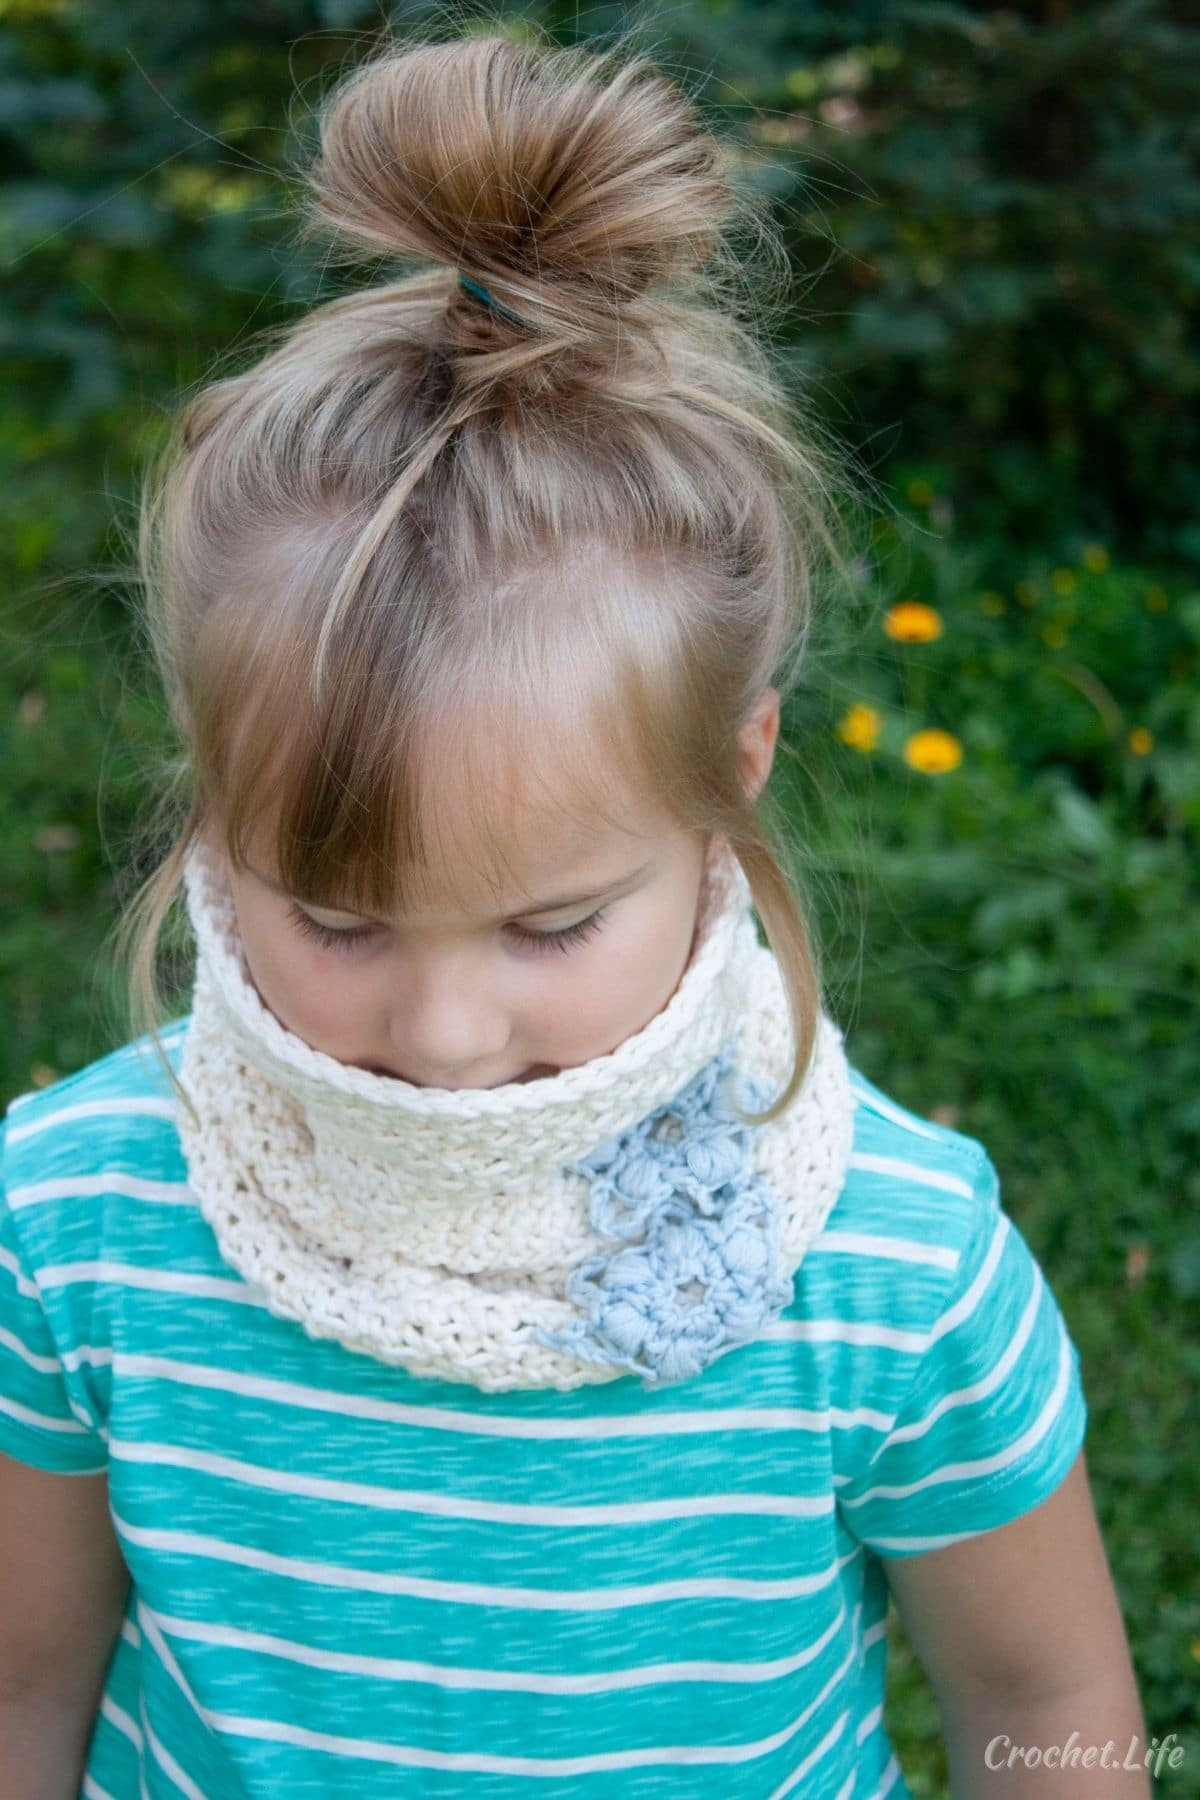 Little girl wearing teal striped shirt wearing white cowl with blue snowflakes